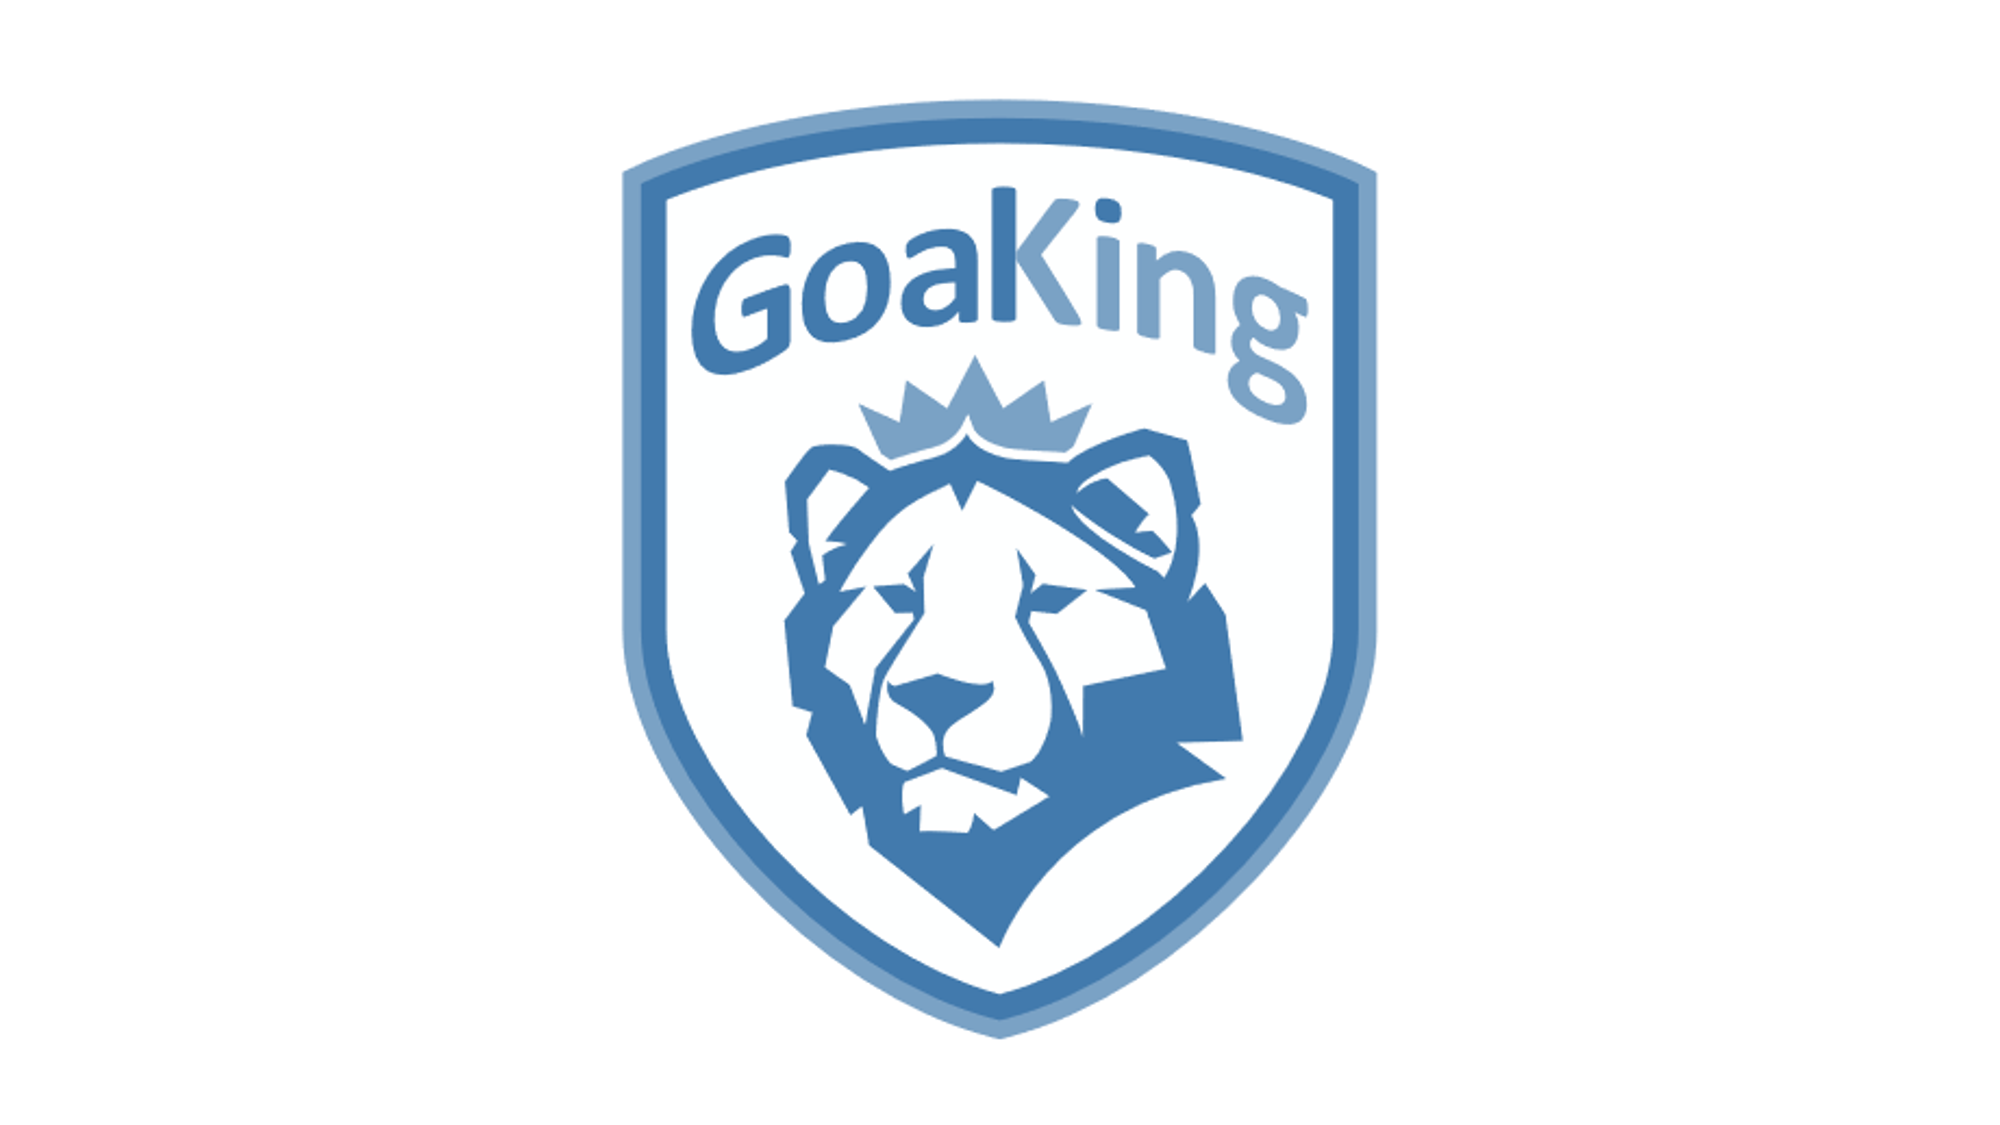 GOALKING Jr. Elite Stars - For youth players 13 to 16 years old